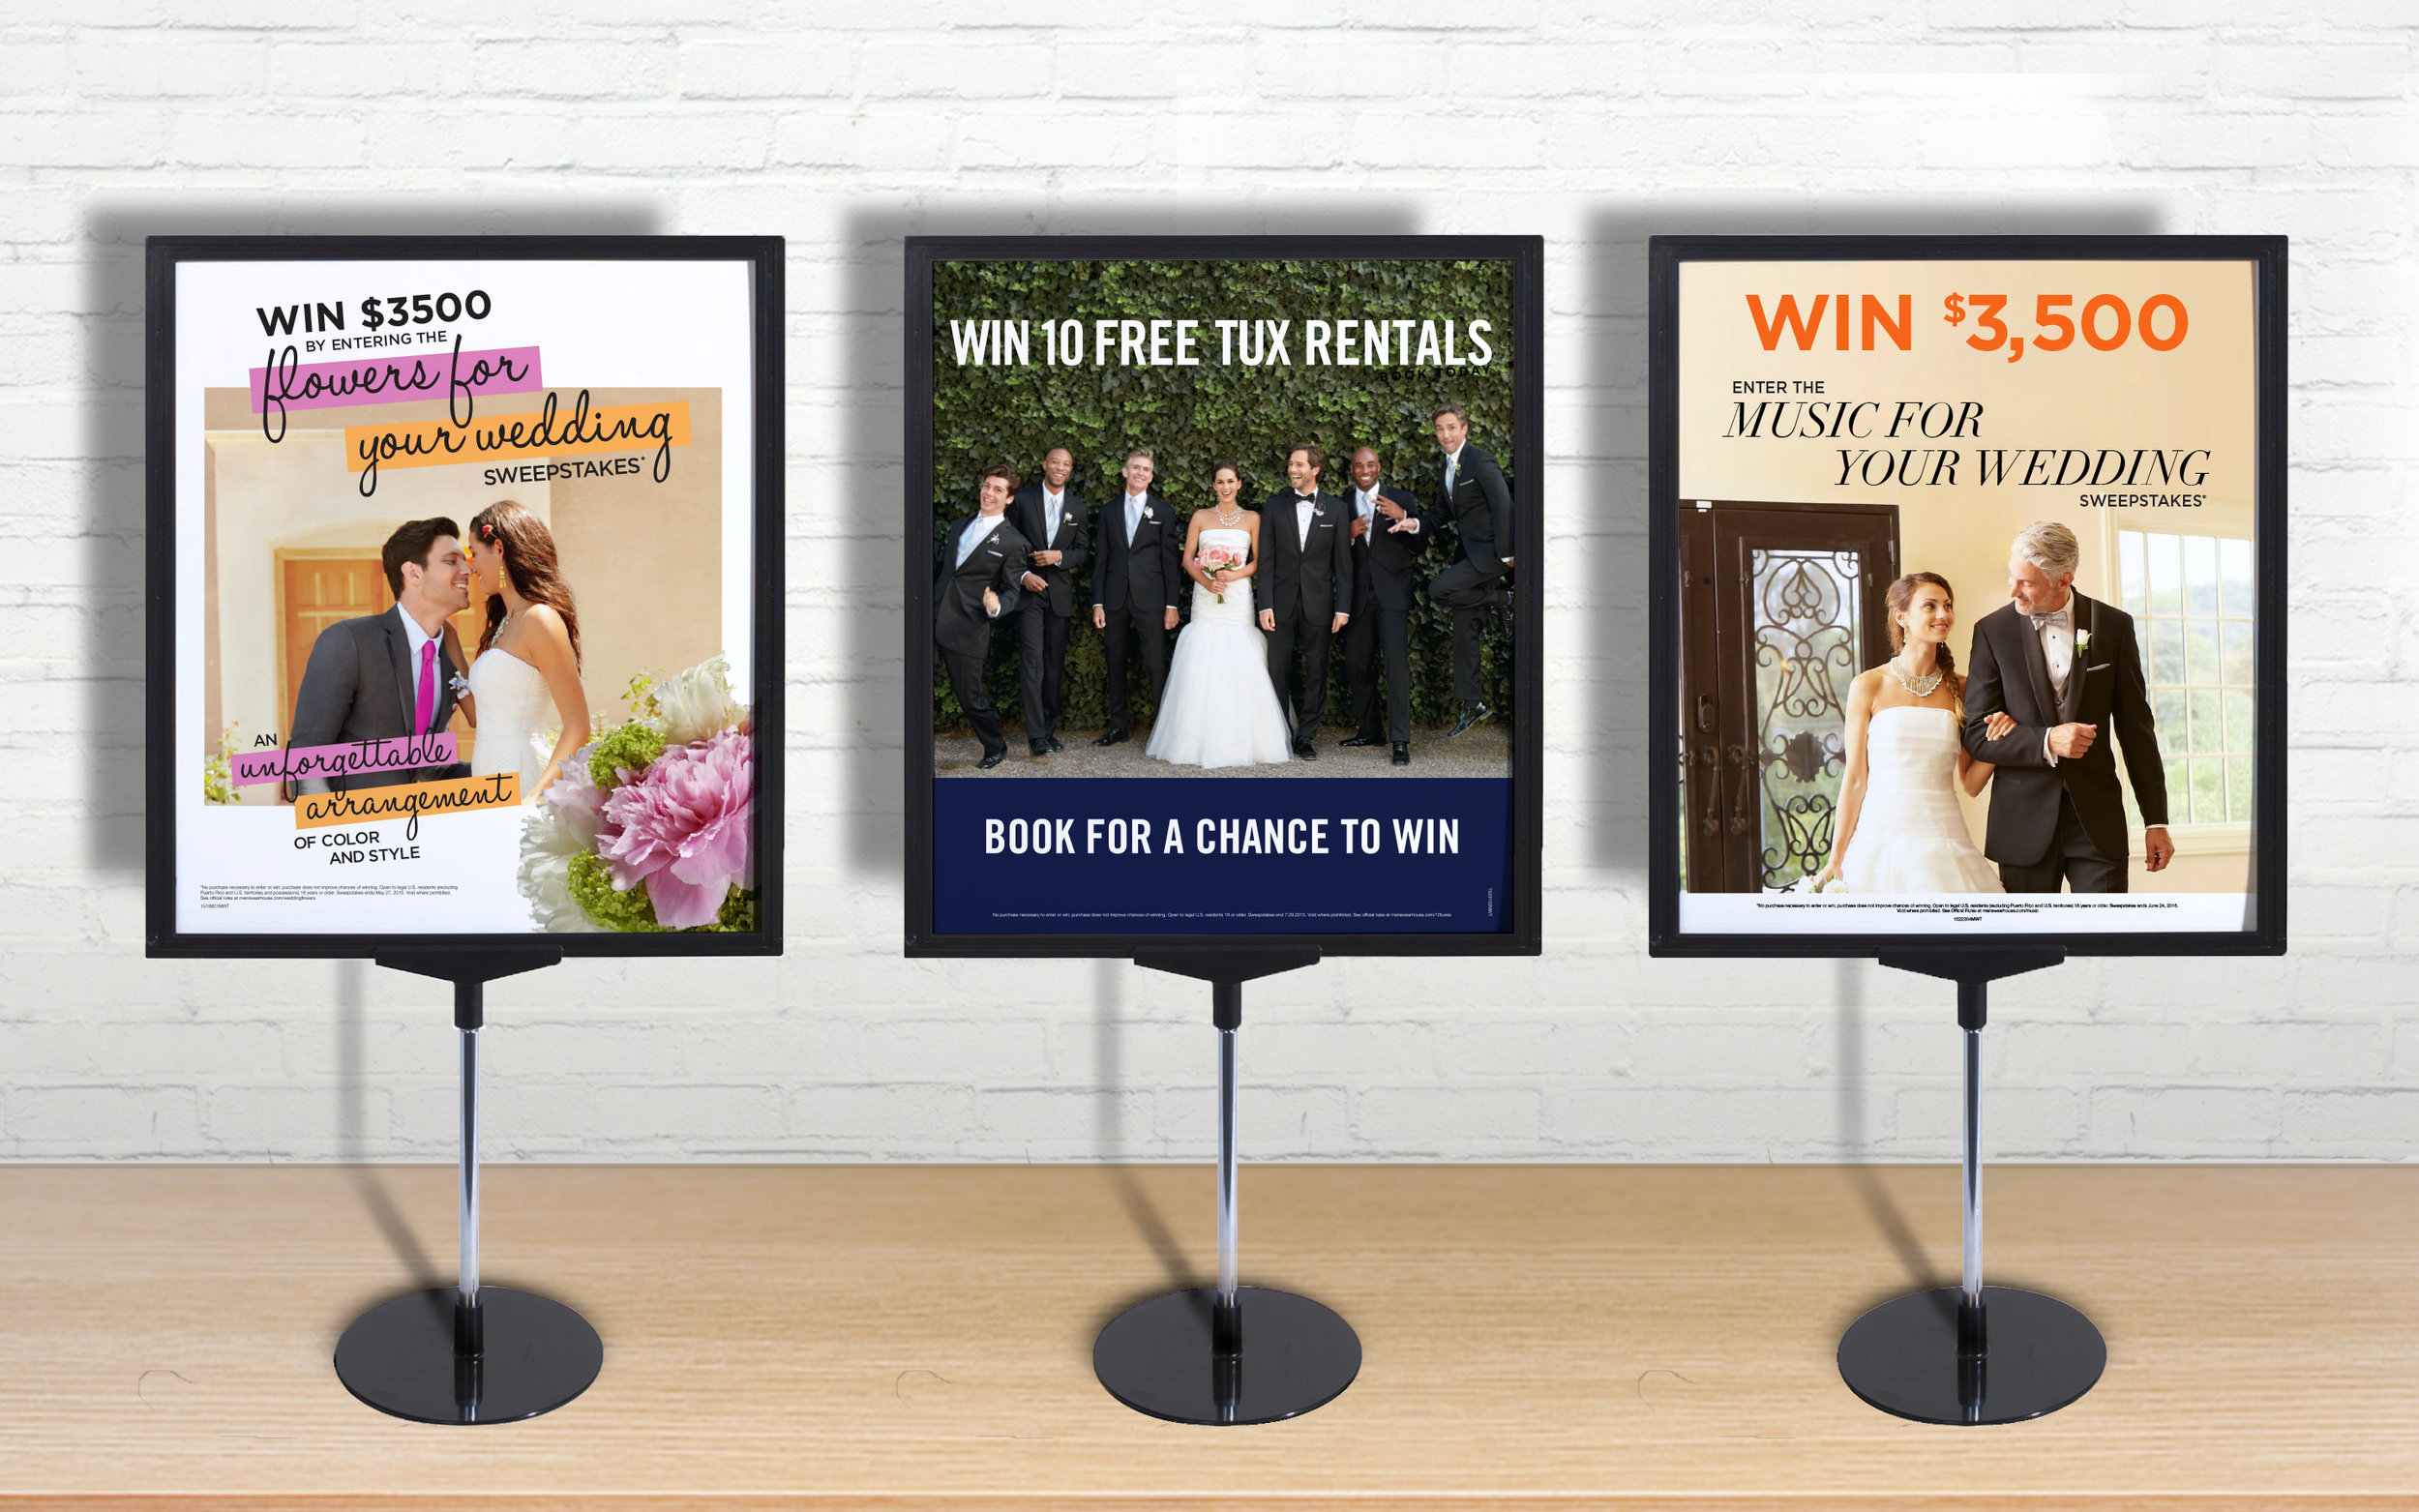 Men's Wearhouse Retail Signage: From sweepstakes to gifts with purchase, our monthly in-store promotions used unconventional approaches for a men's clothing store, by appealing to that other influencer: the groom's future spouse